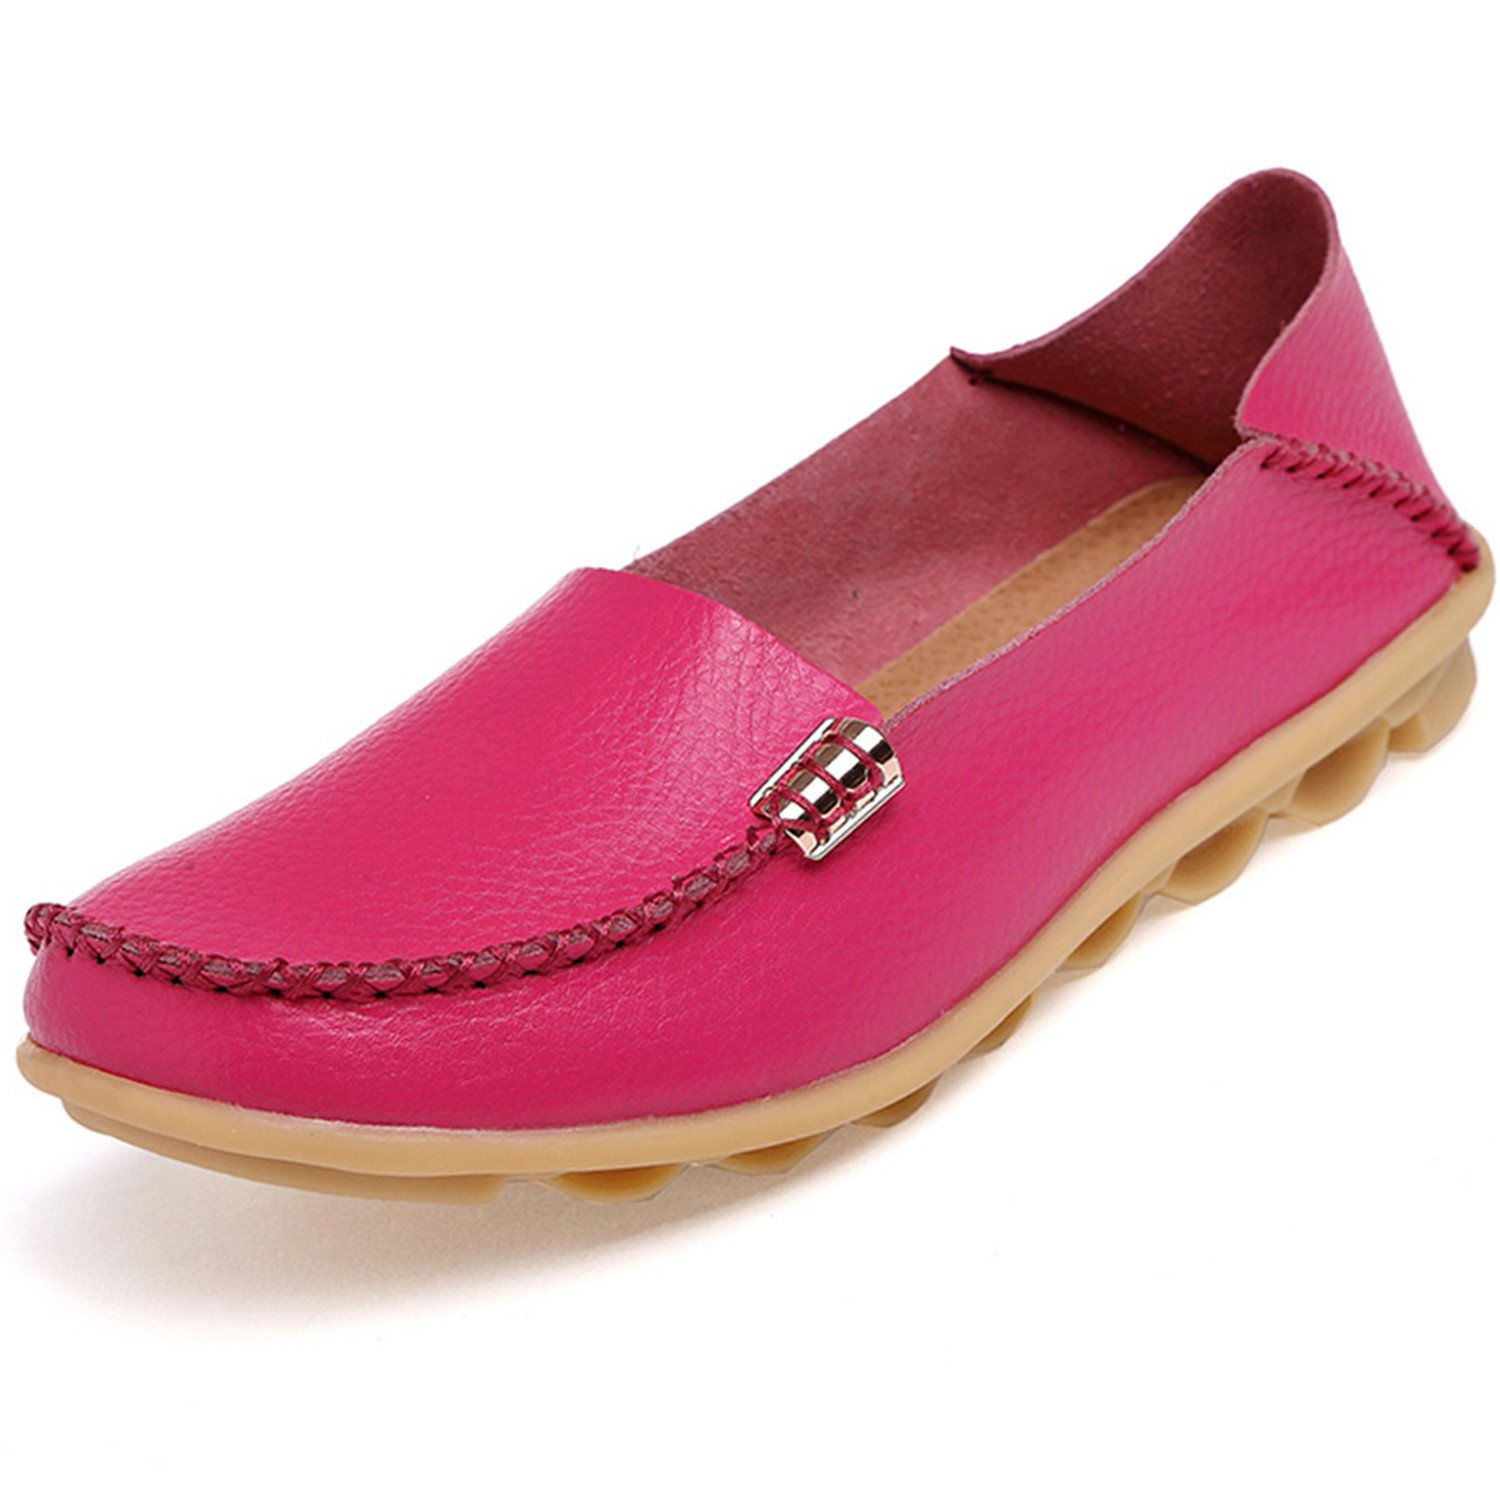 Beststore VAO Summer Candy Colors Genuine Leather Women Casual Shoes New Fashion Breathable Slip-On Peas Massage Flat Shoes Plus Size 35-44 B078FPMYKX 5 B(M) US|Deep Pink